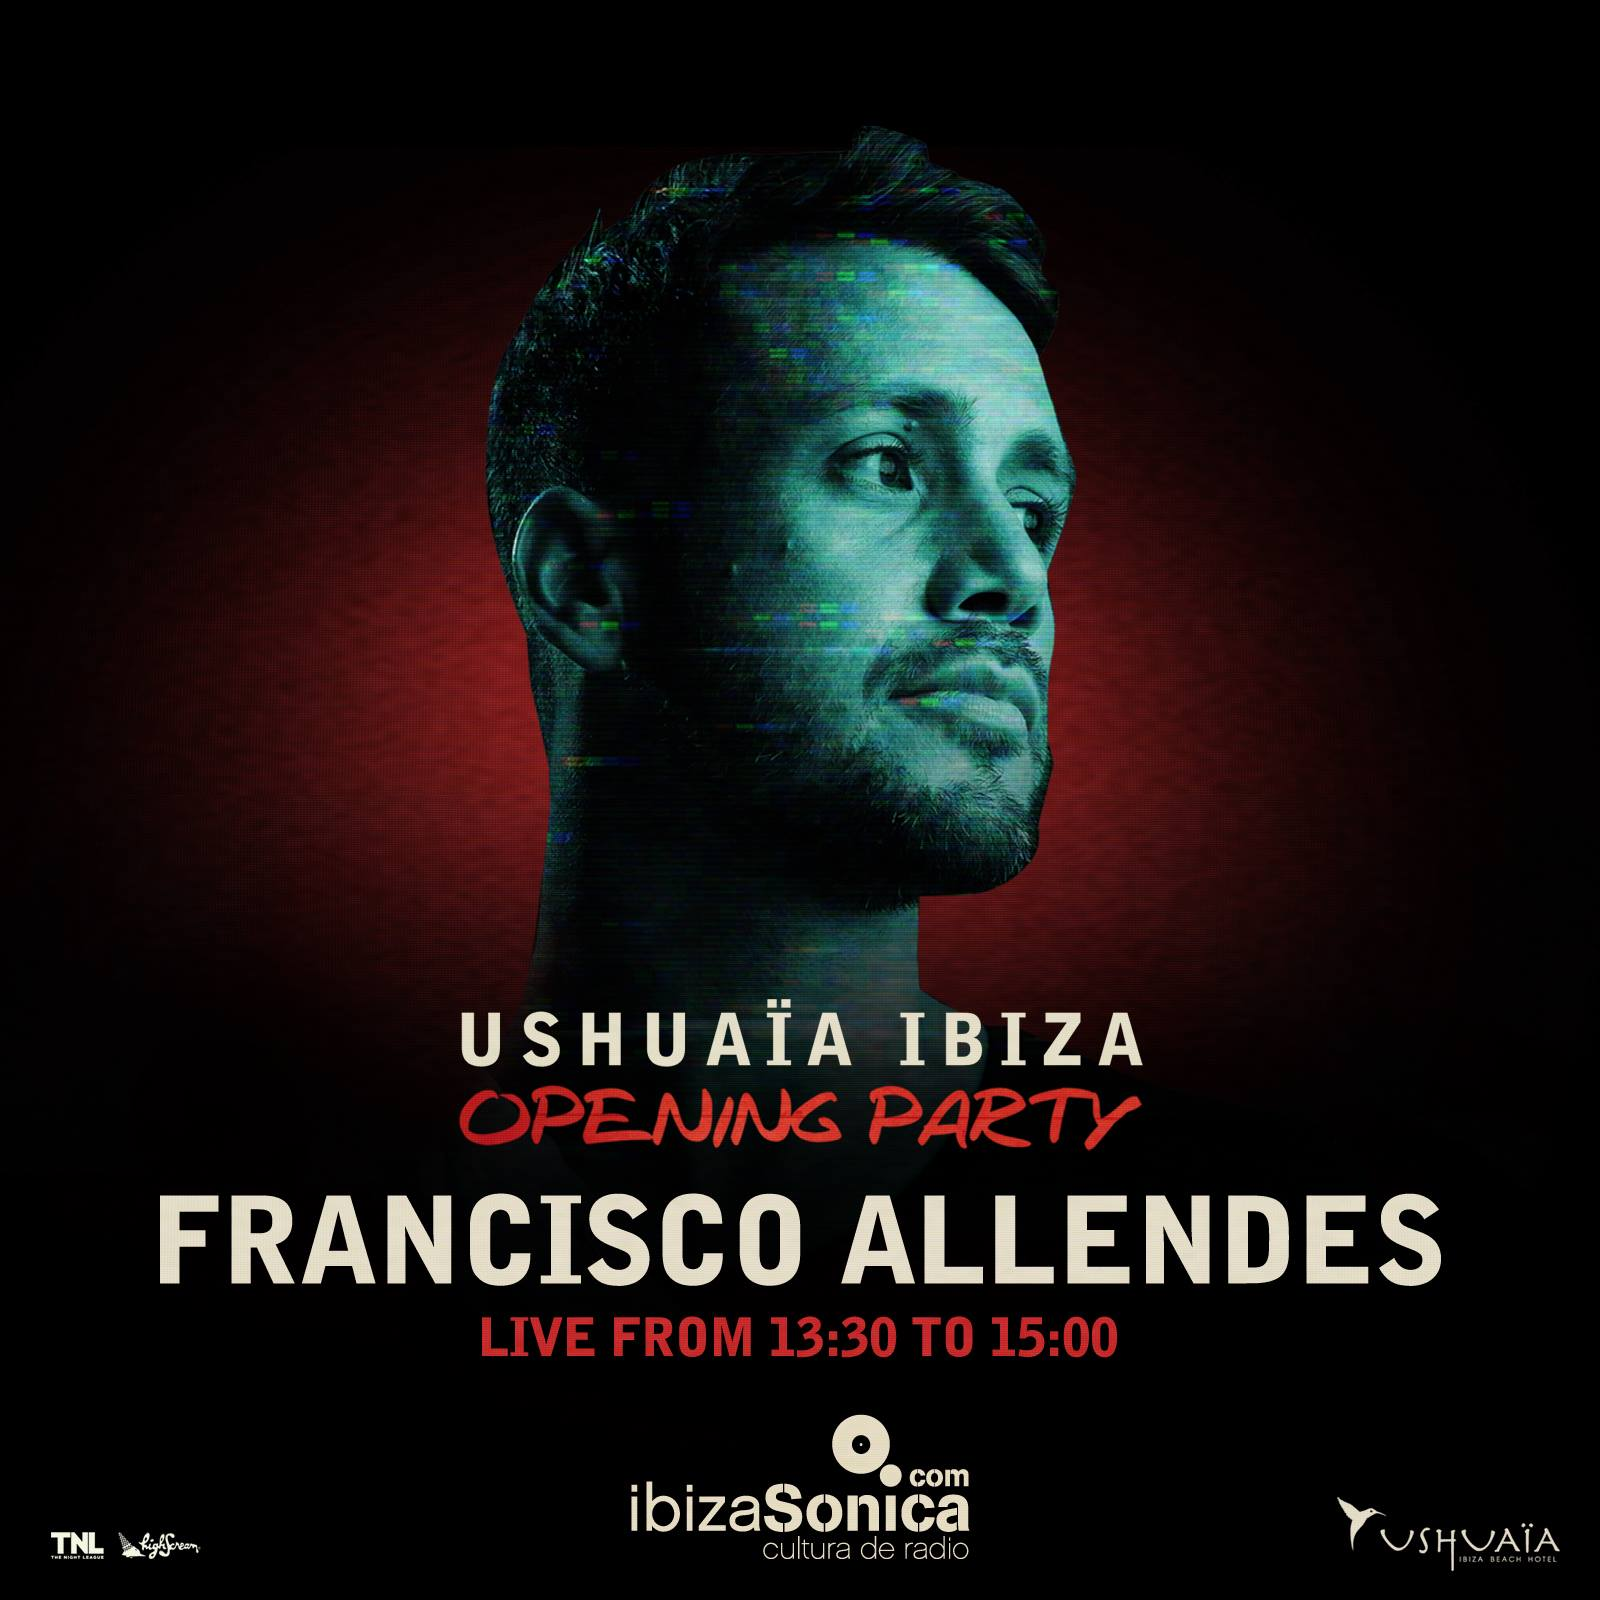 download → Francisco Allendes - live at Ushuaia 2017 Opening Party (Ibiza) - 27-May-2017